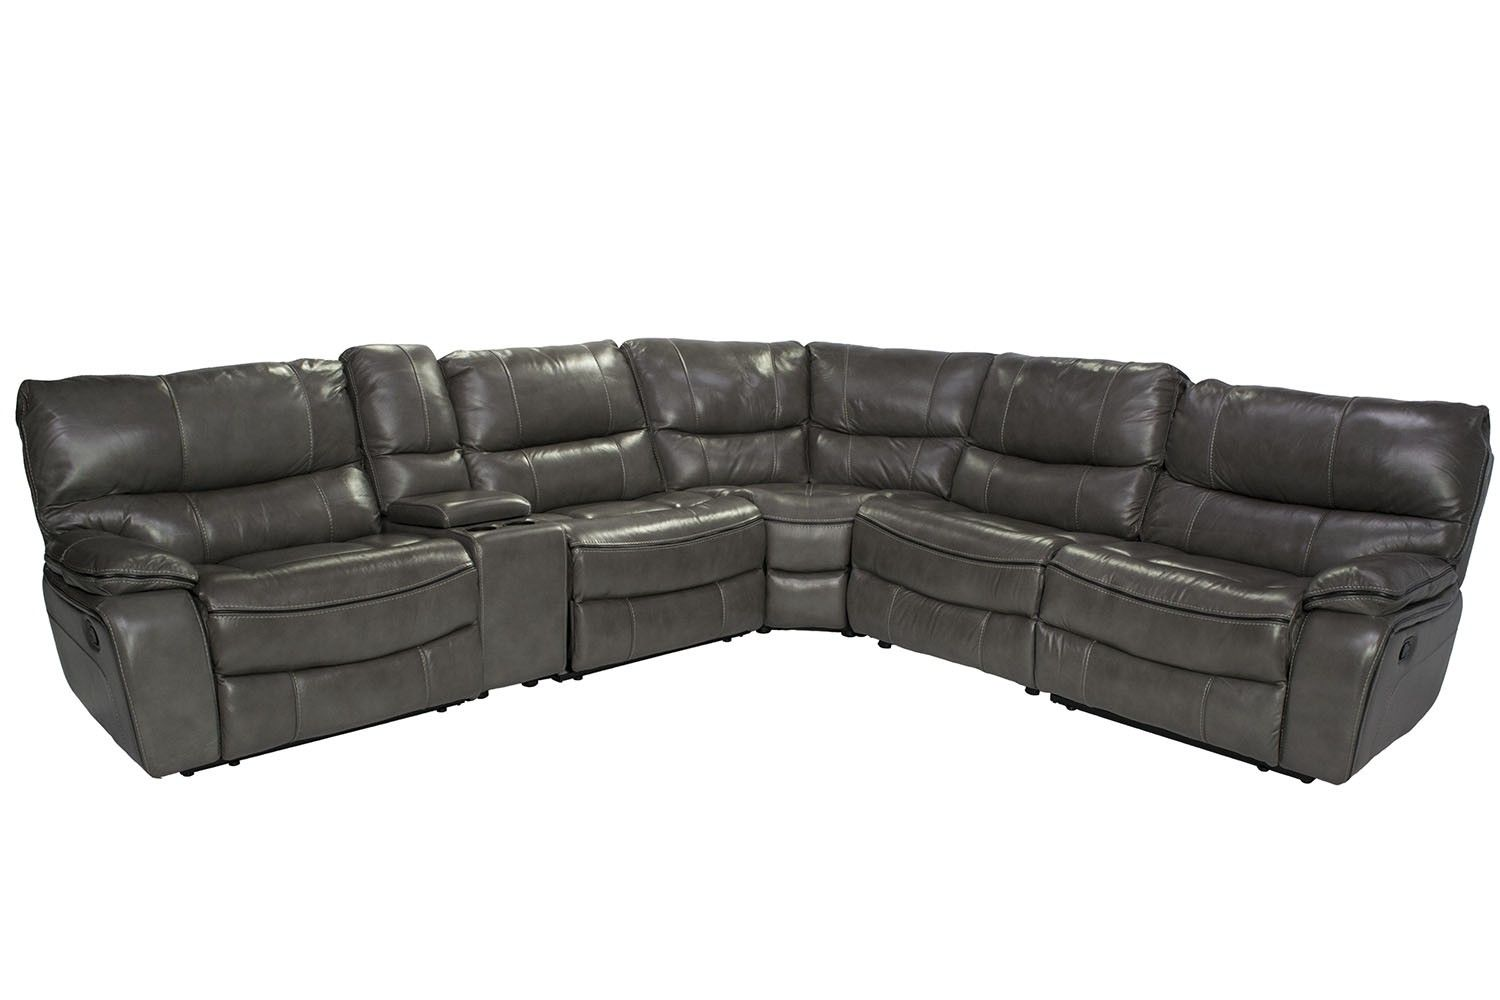 Lotus gray 6 piece leather seating reclining sectional mor furniture for less